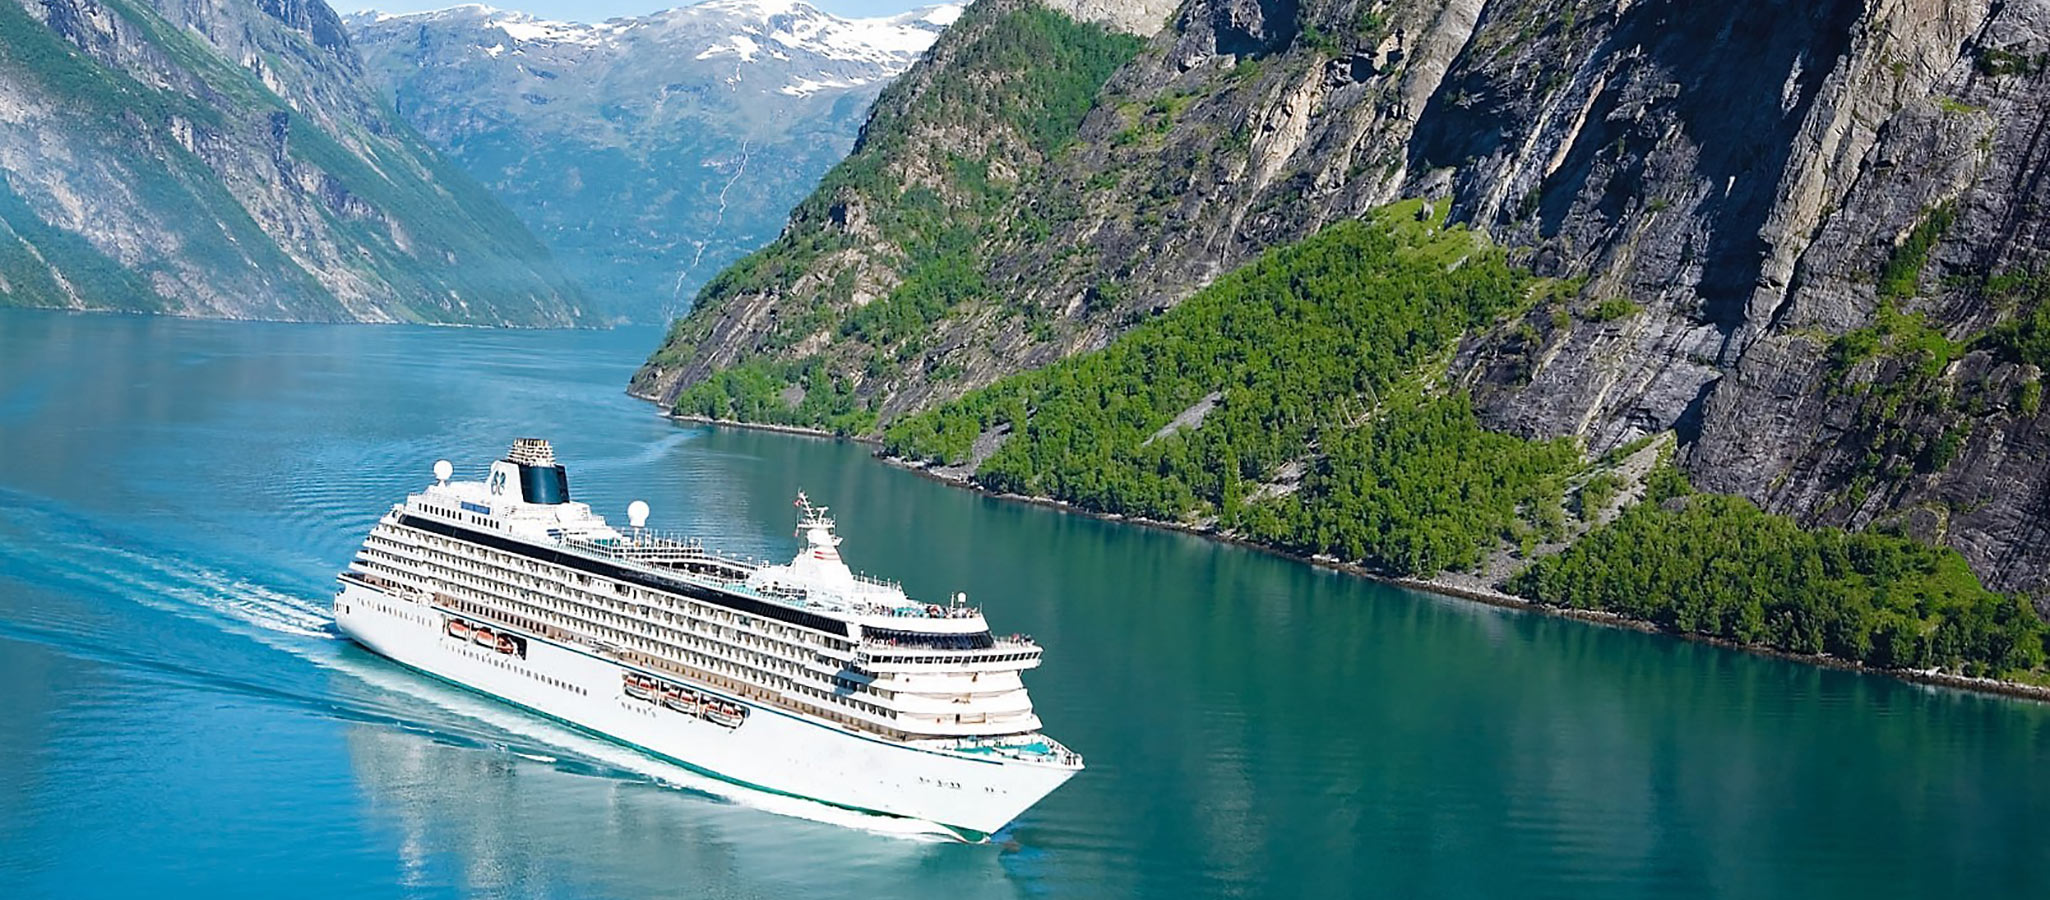 Most cruise ships in this category are traveling in northern Europe and the Mediterranean during the summer months, heading for the Canary Islands in the winter.